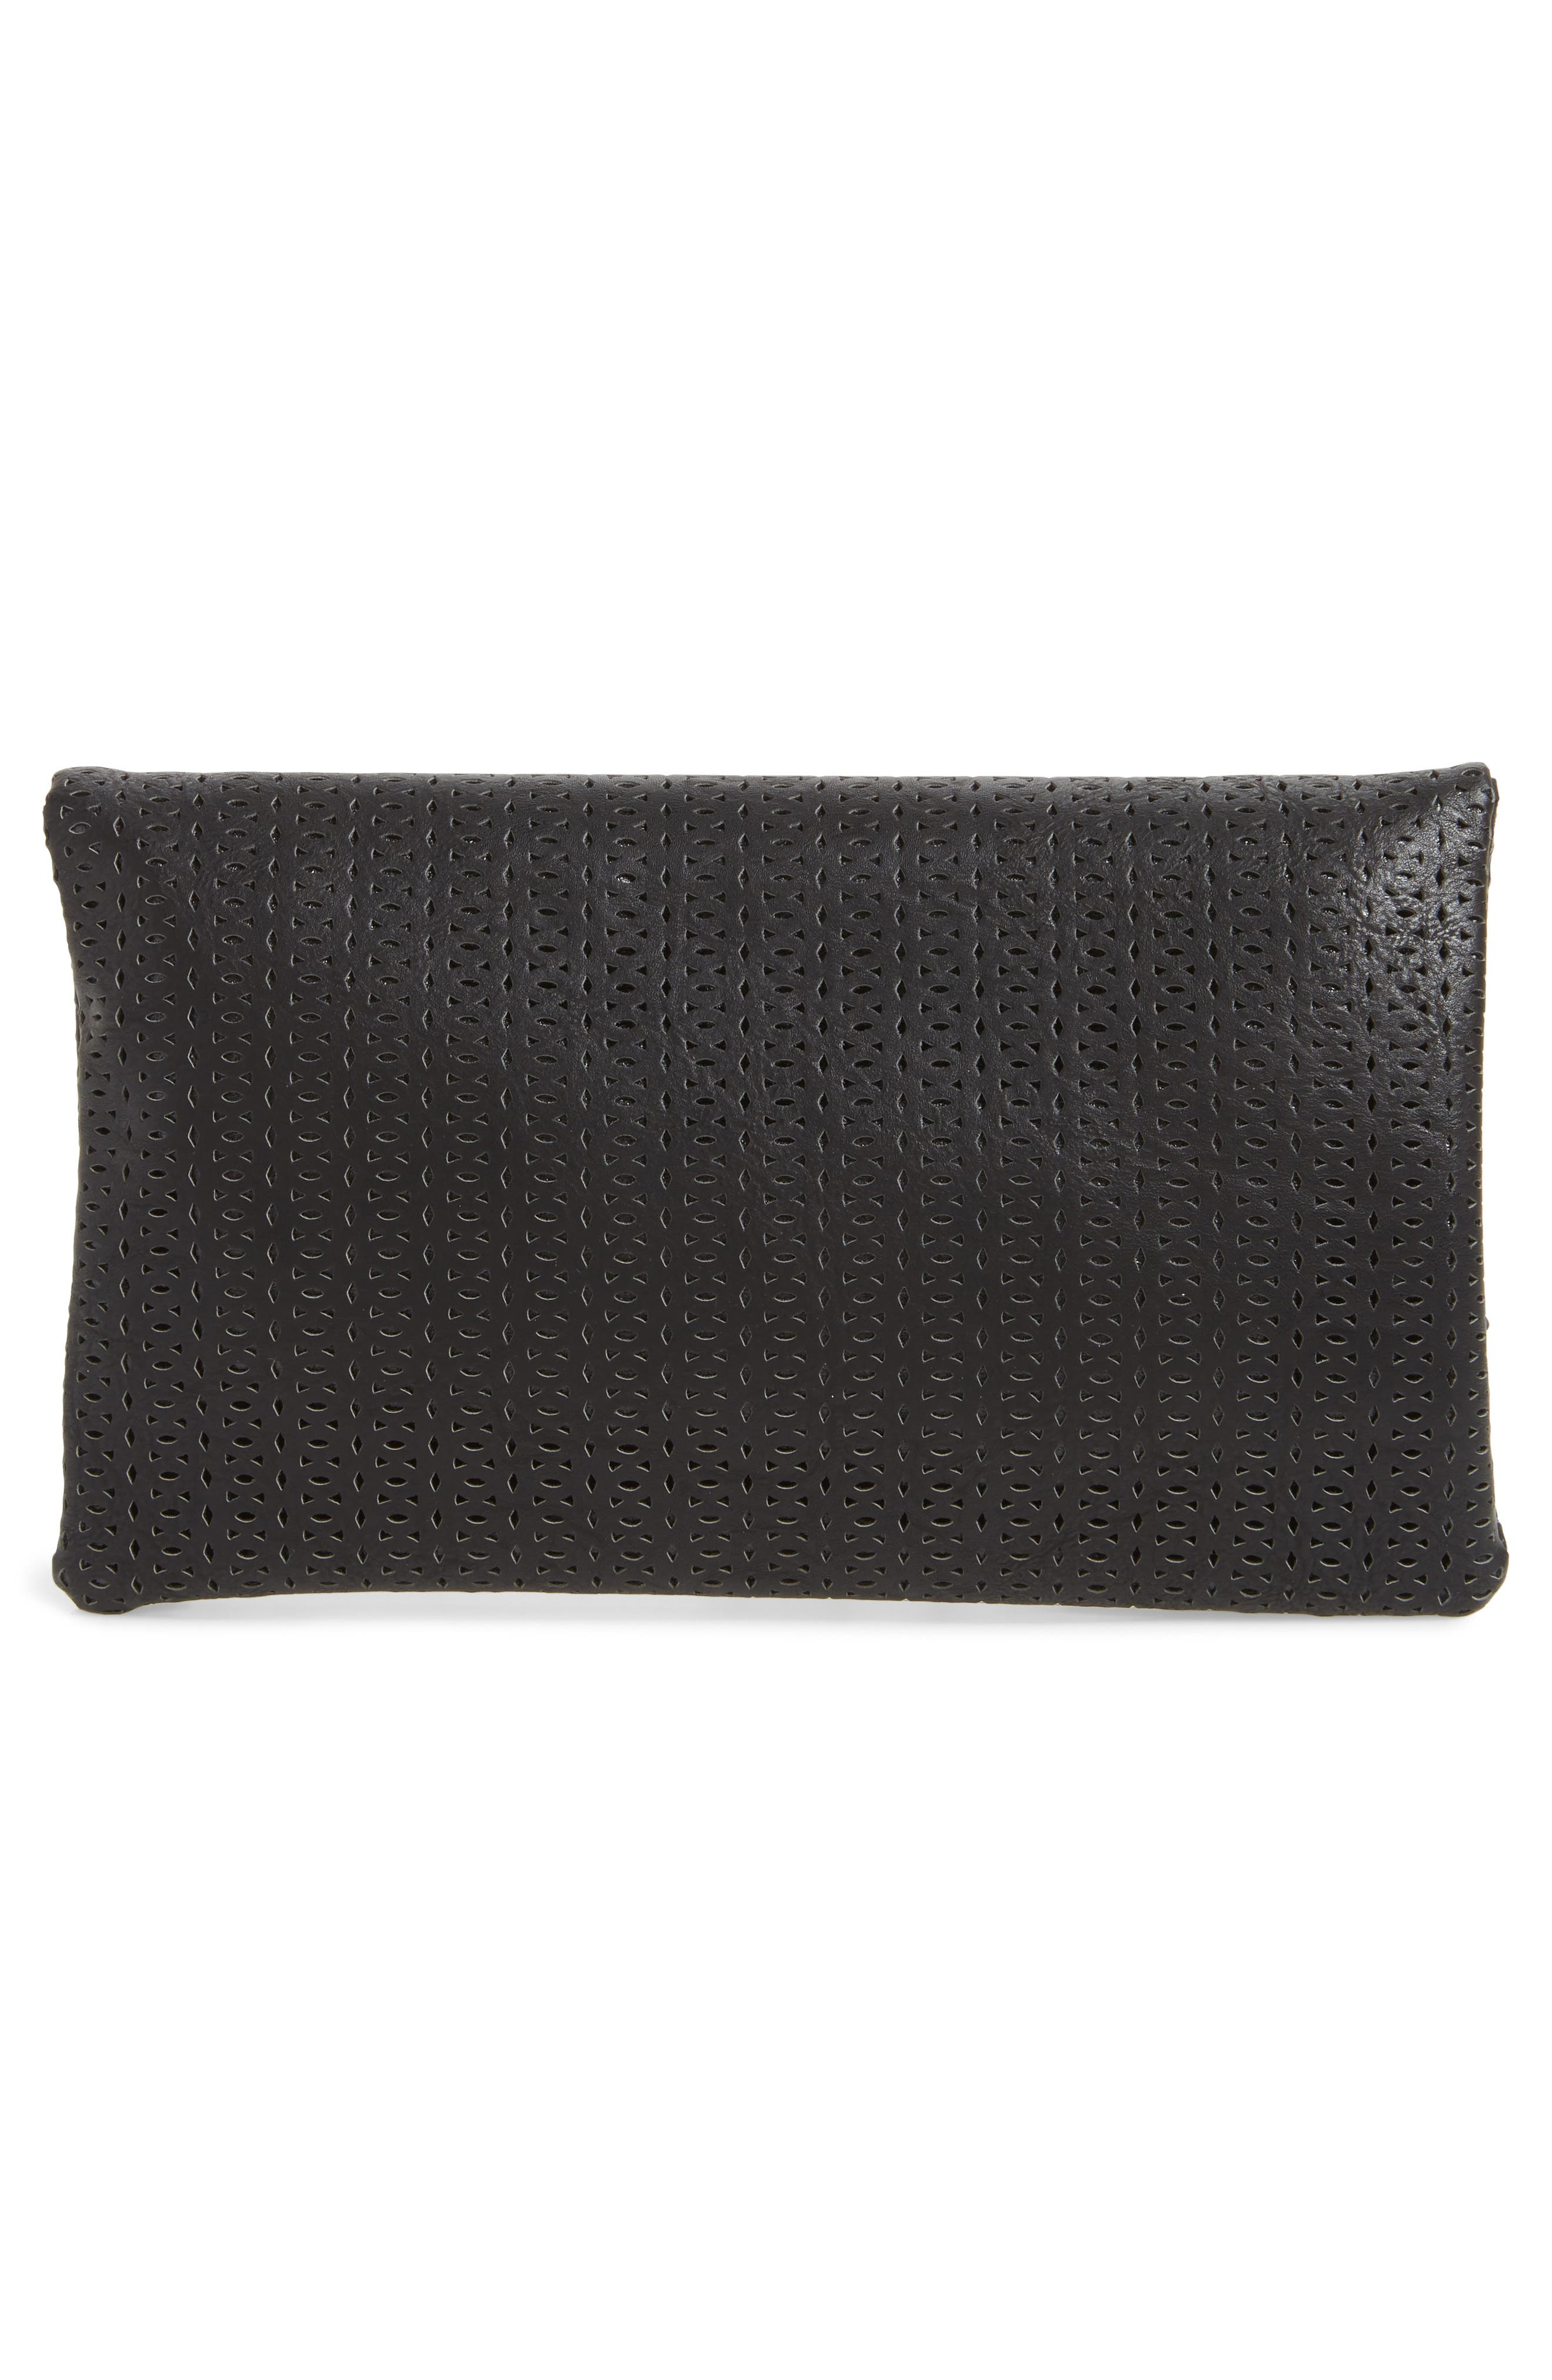 Perforated Fold Over Clutch,                             Alternate thumbnail 3, color,                             002